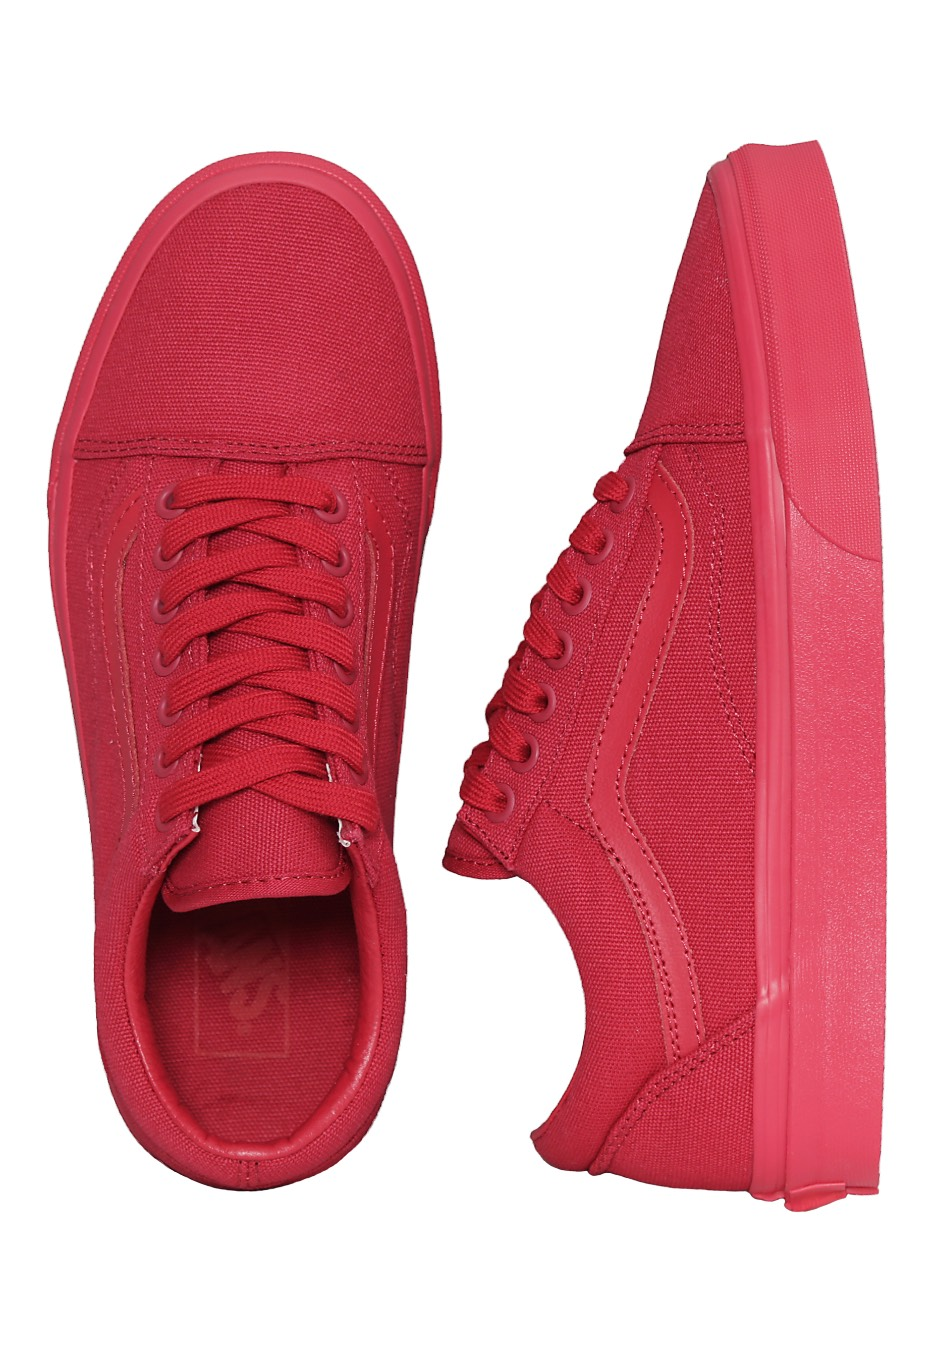 Vans - Old Skool Crimson - Girl Shoes - Impericon.com Worldwide 6720f2f4d7